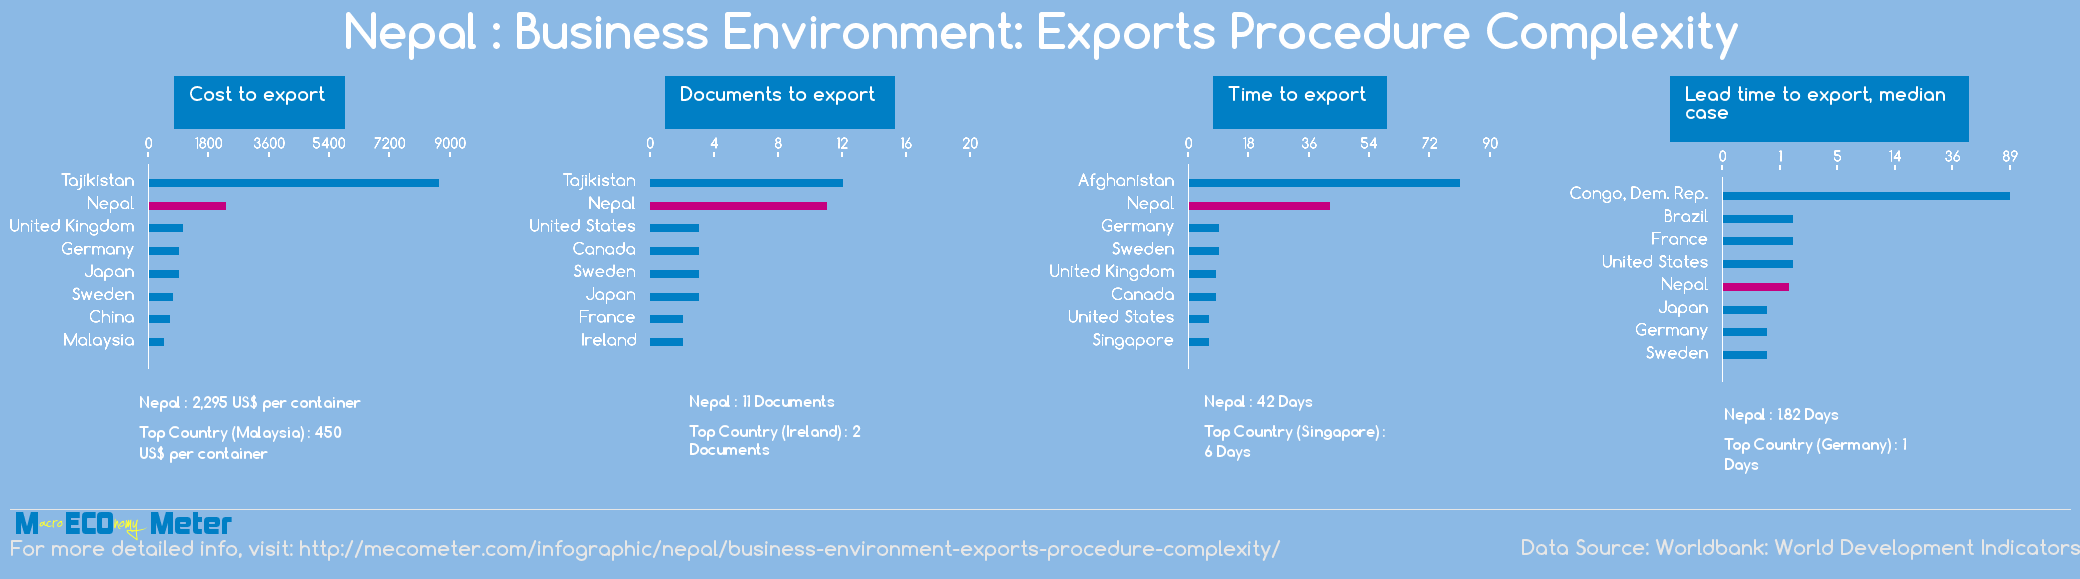 Nepal : Business Environment: Exports Procedure Complexity